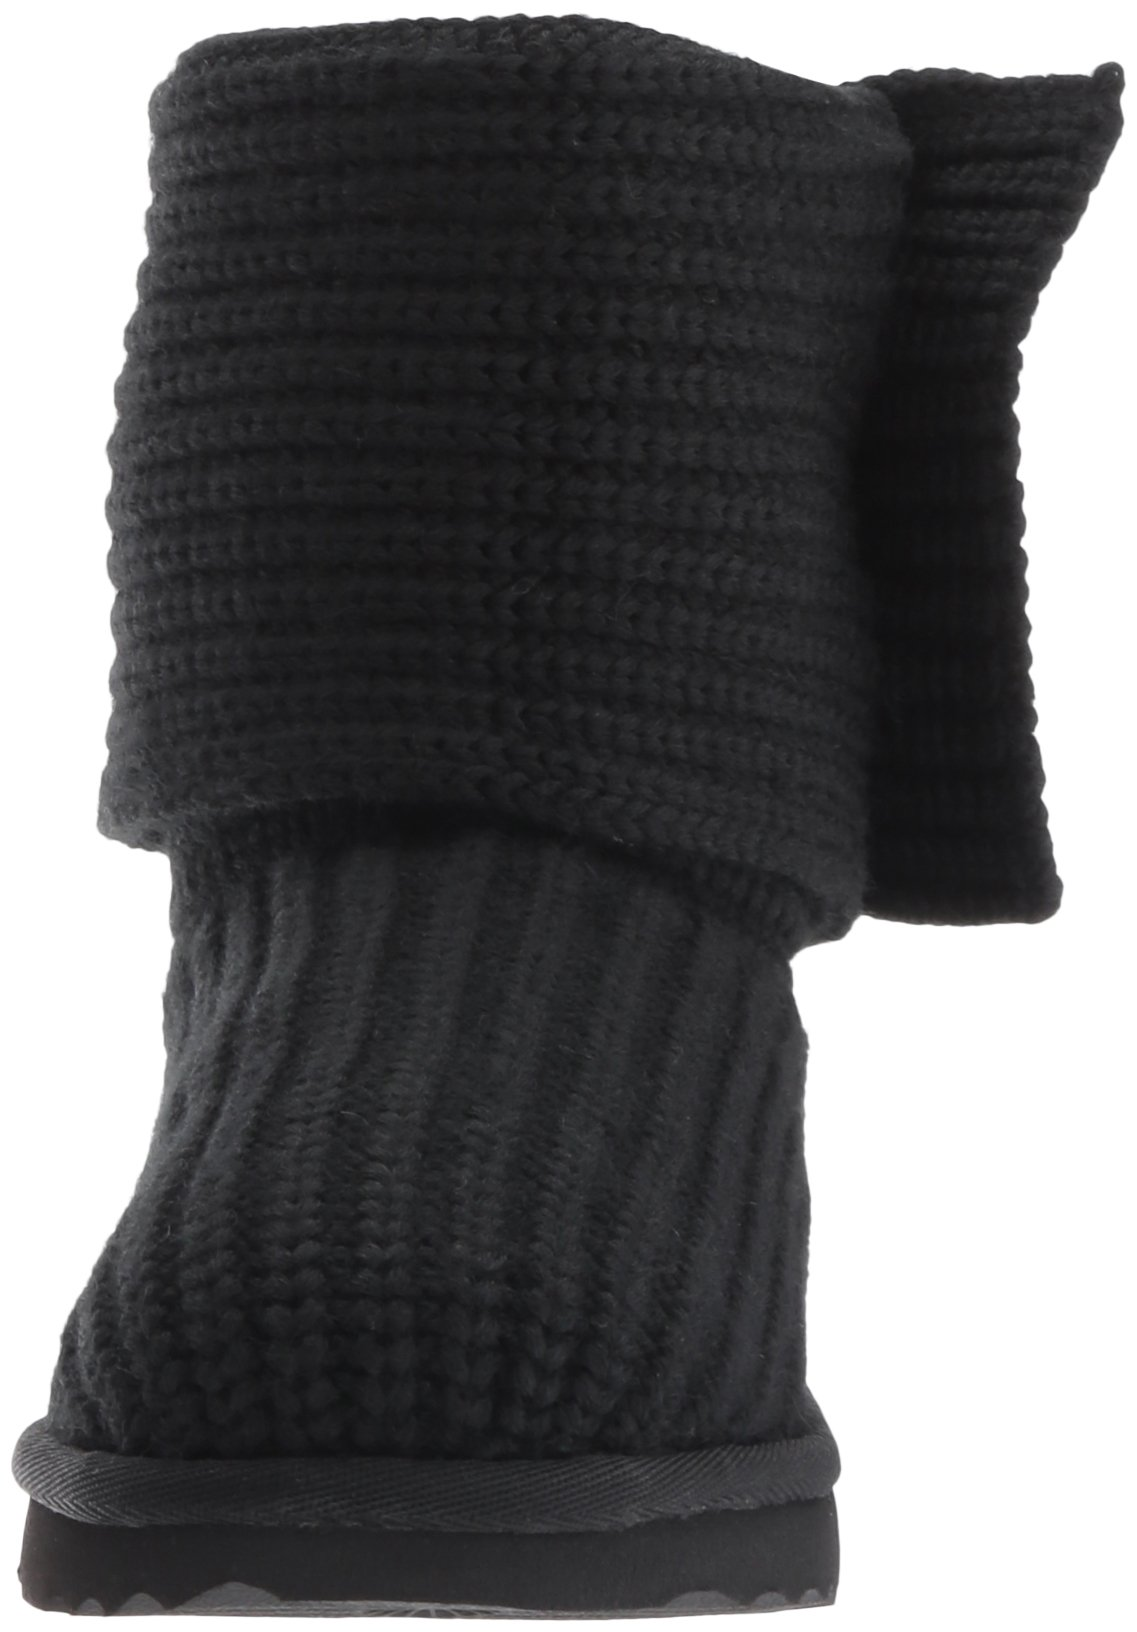 UGG Girls K Cardy II Pull-On Boot, Black, 8 M US Toddler by UGG (Image #4)